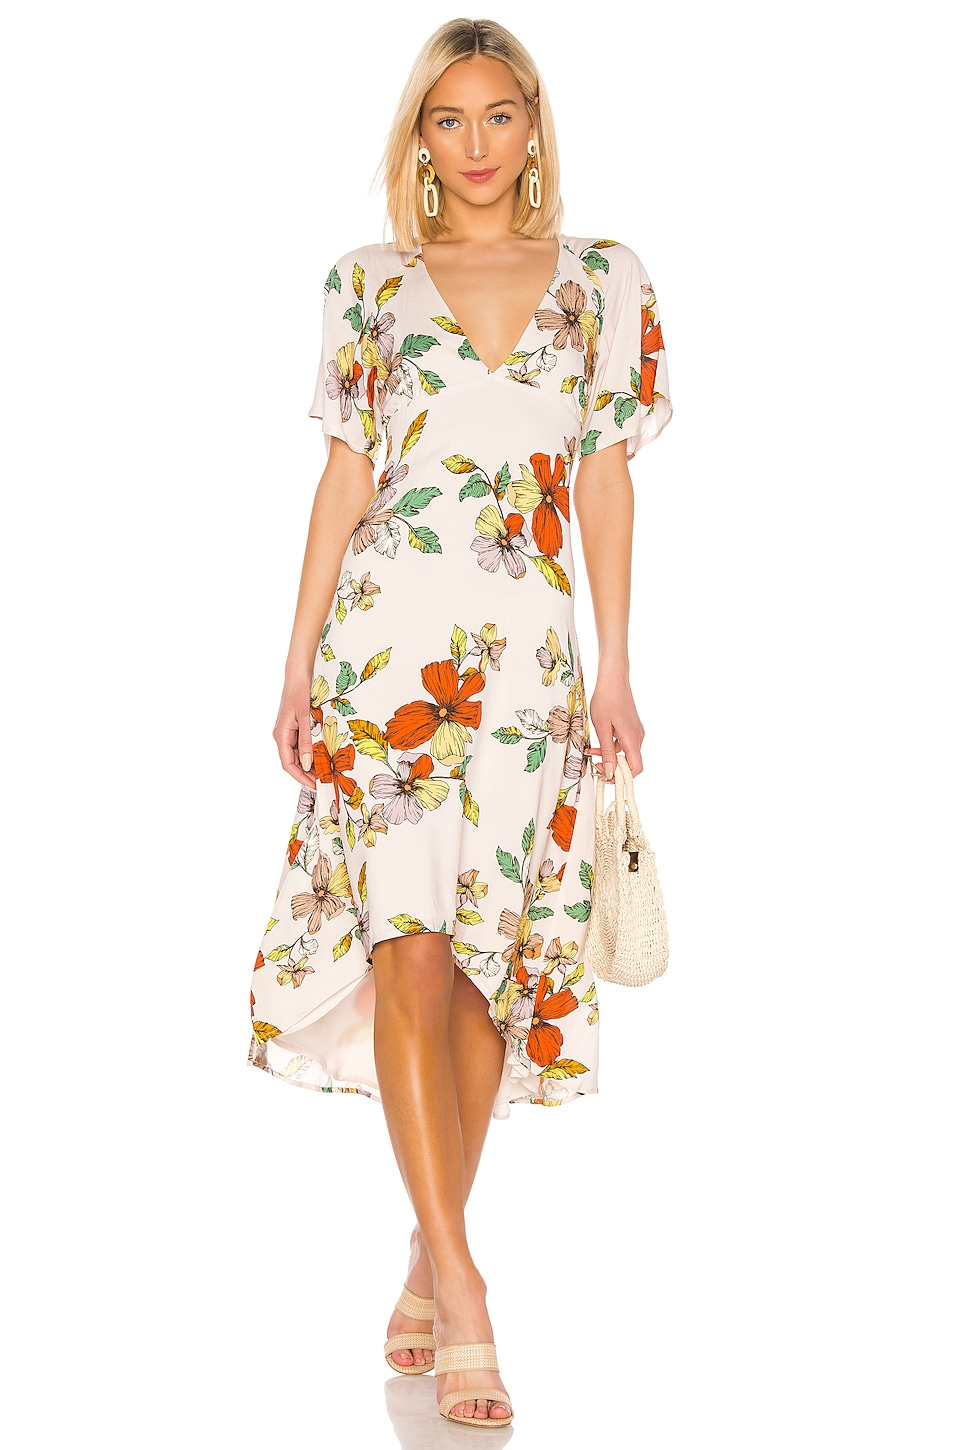 House of Harlow 1960 VESTIDO MIDI FLORES ALONZA